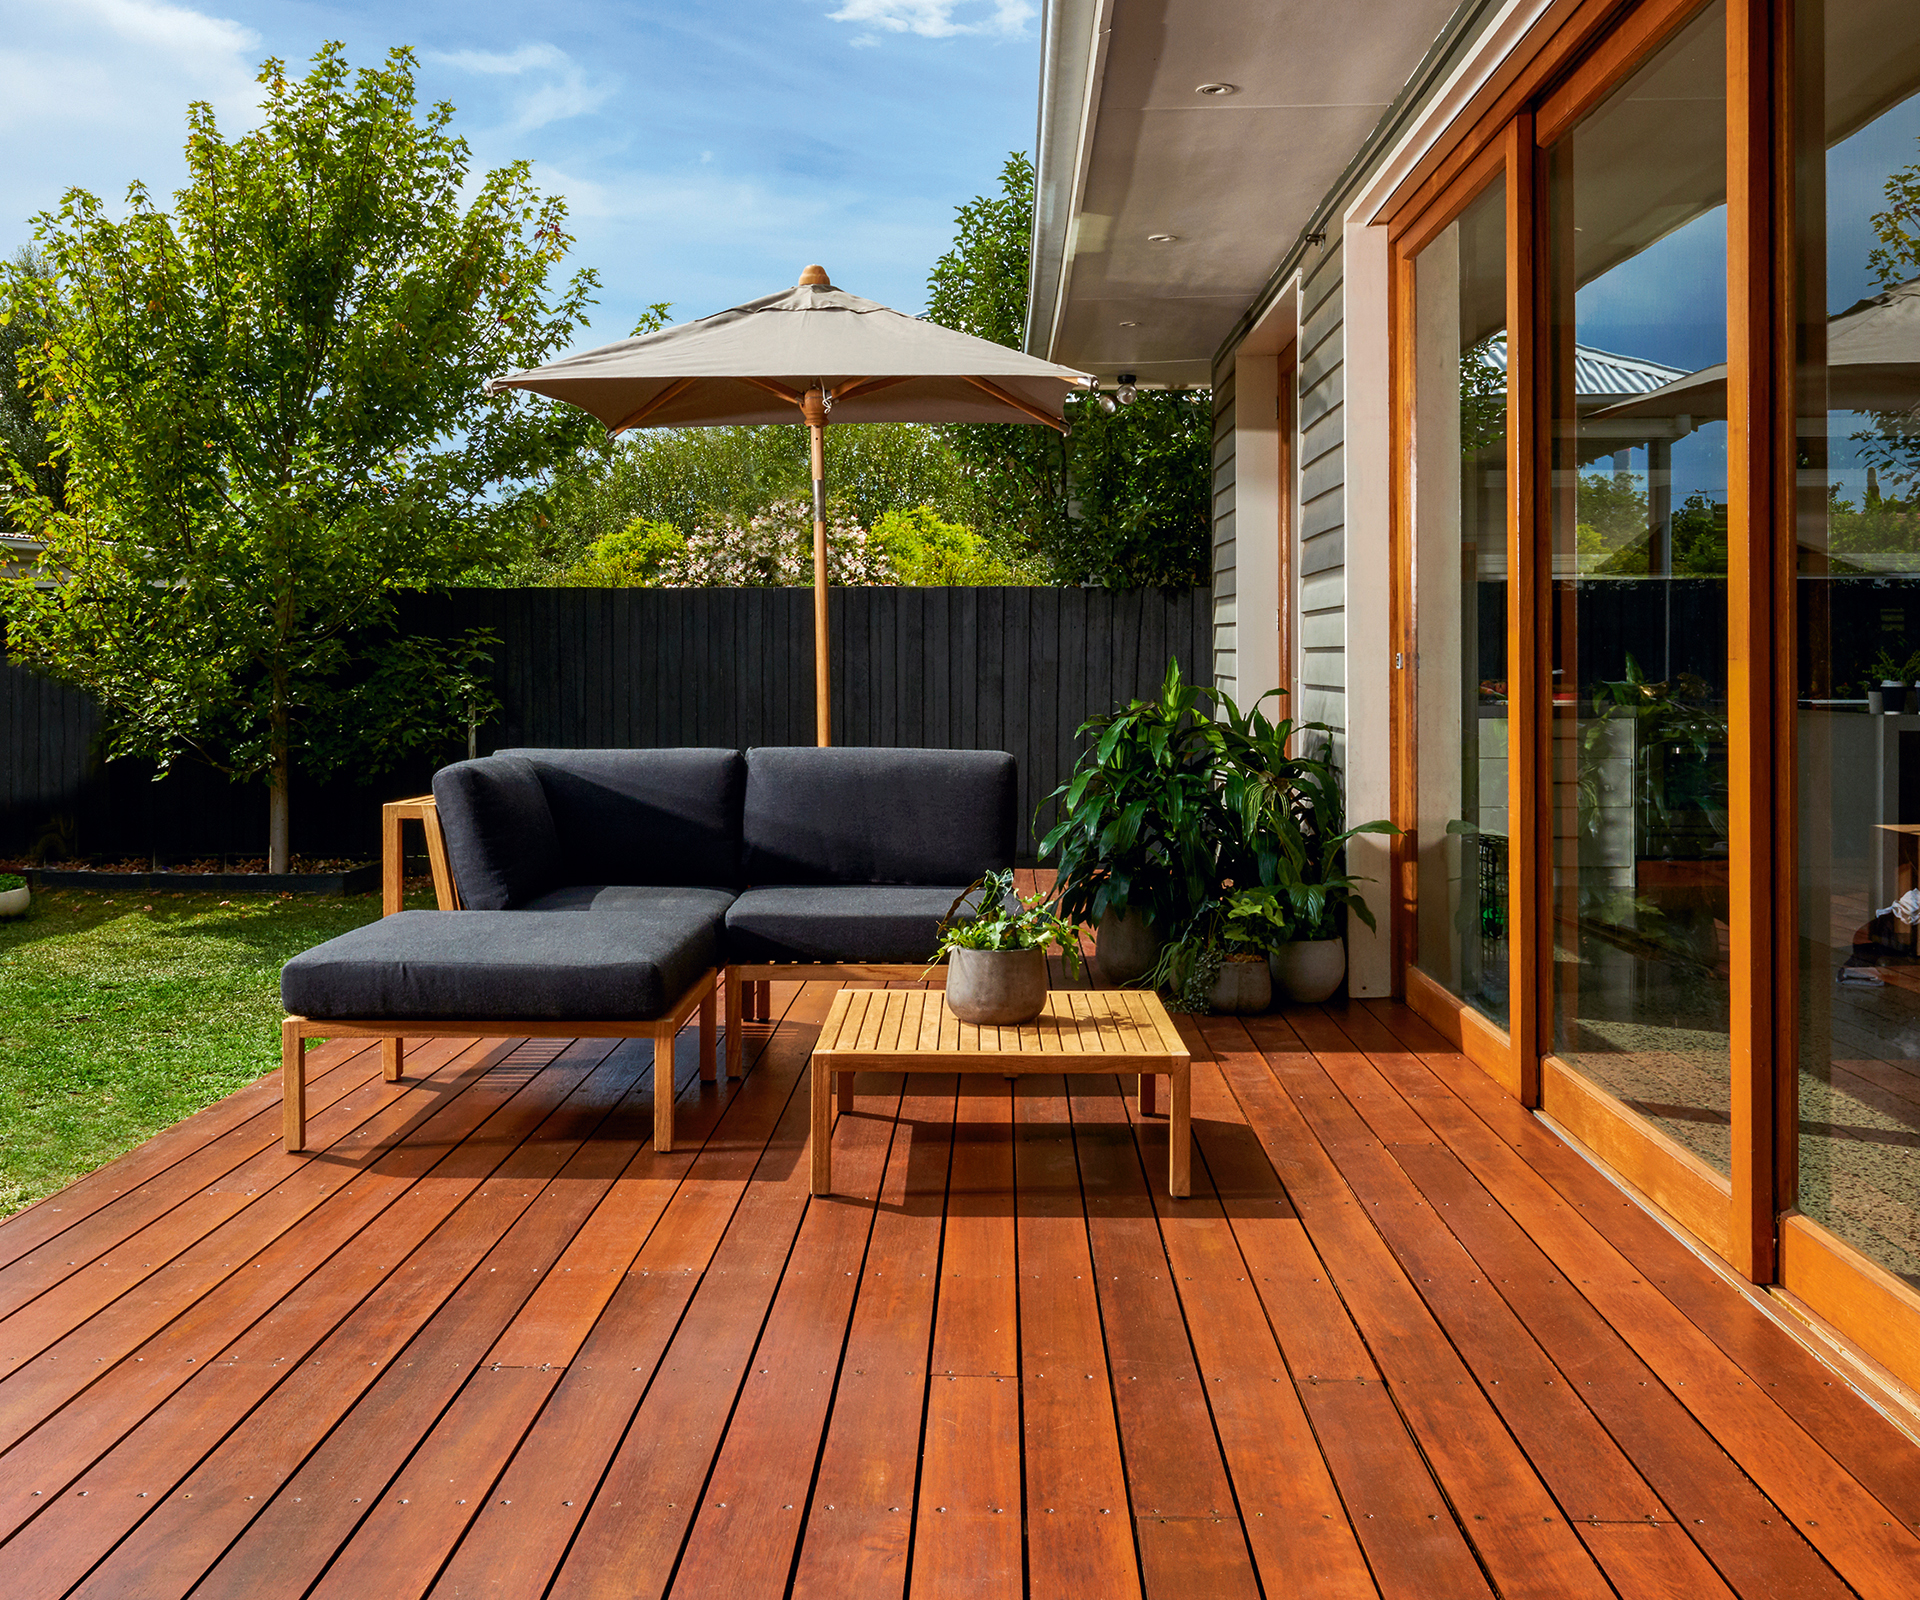 3 tips to prepare your deck for summer